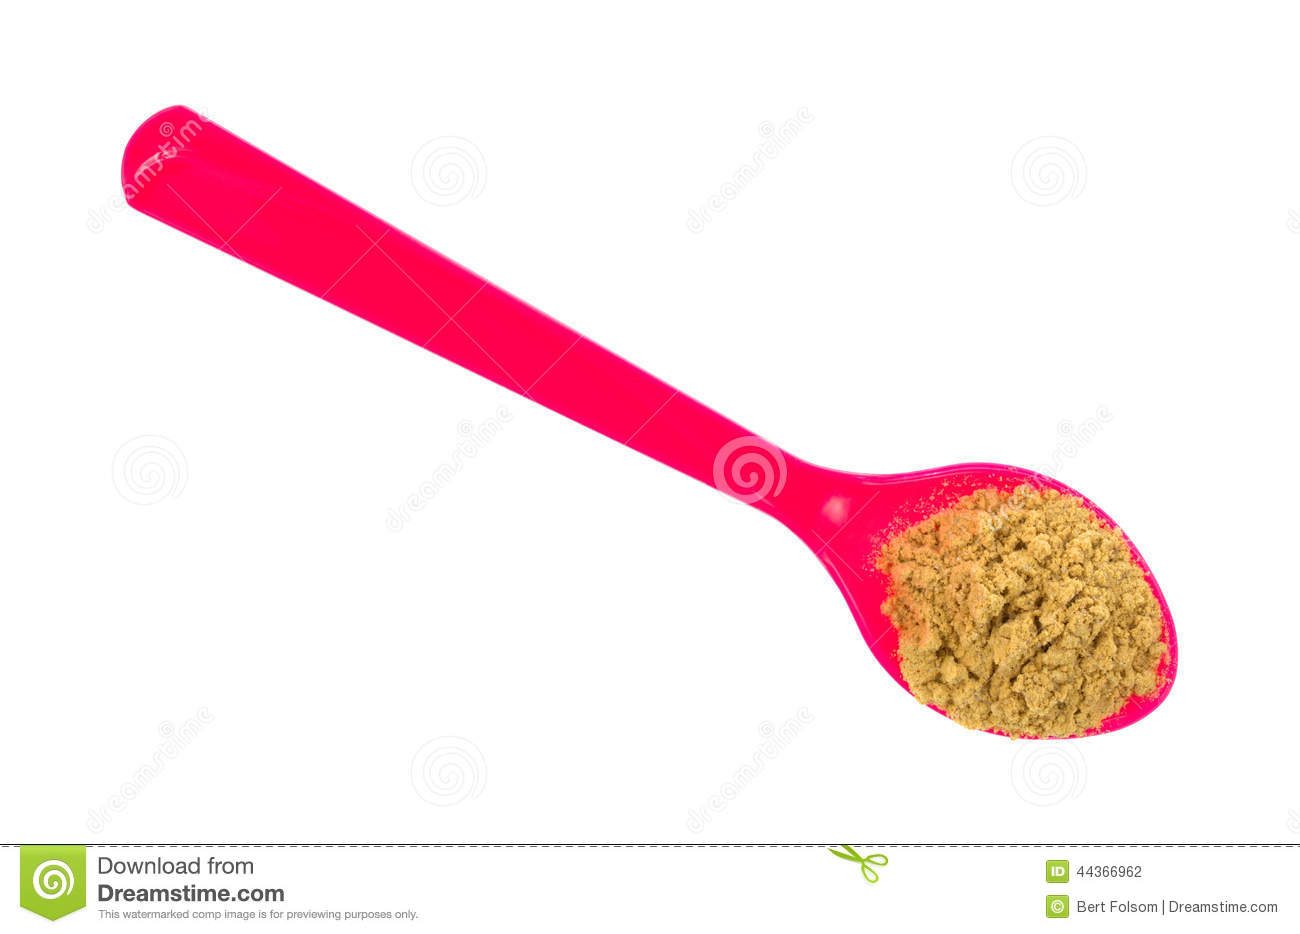 Pink spoon with stir fry seasoning on a white background